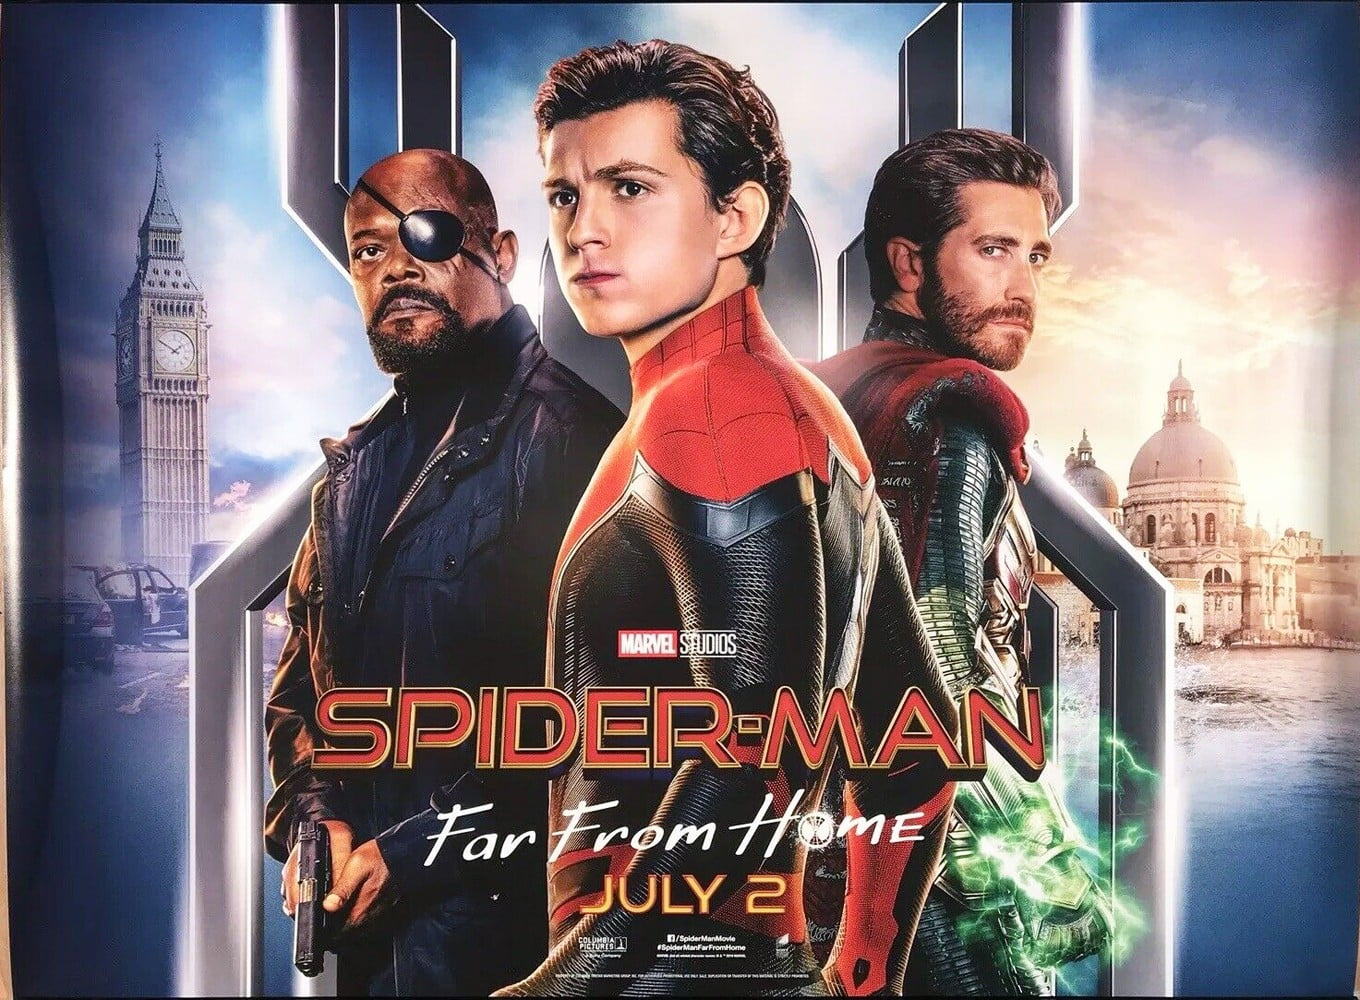 Spidermanfarfromhome6